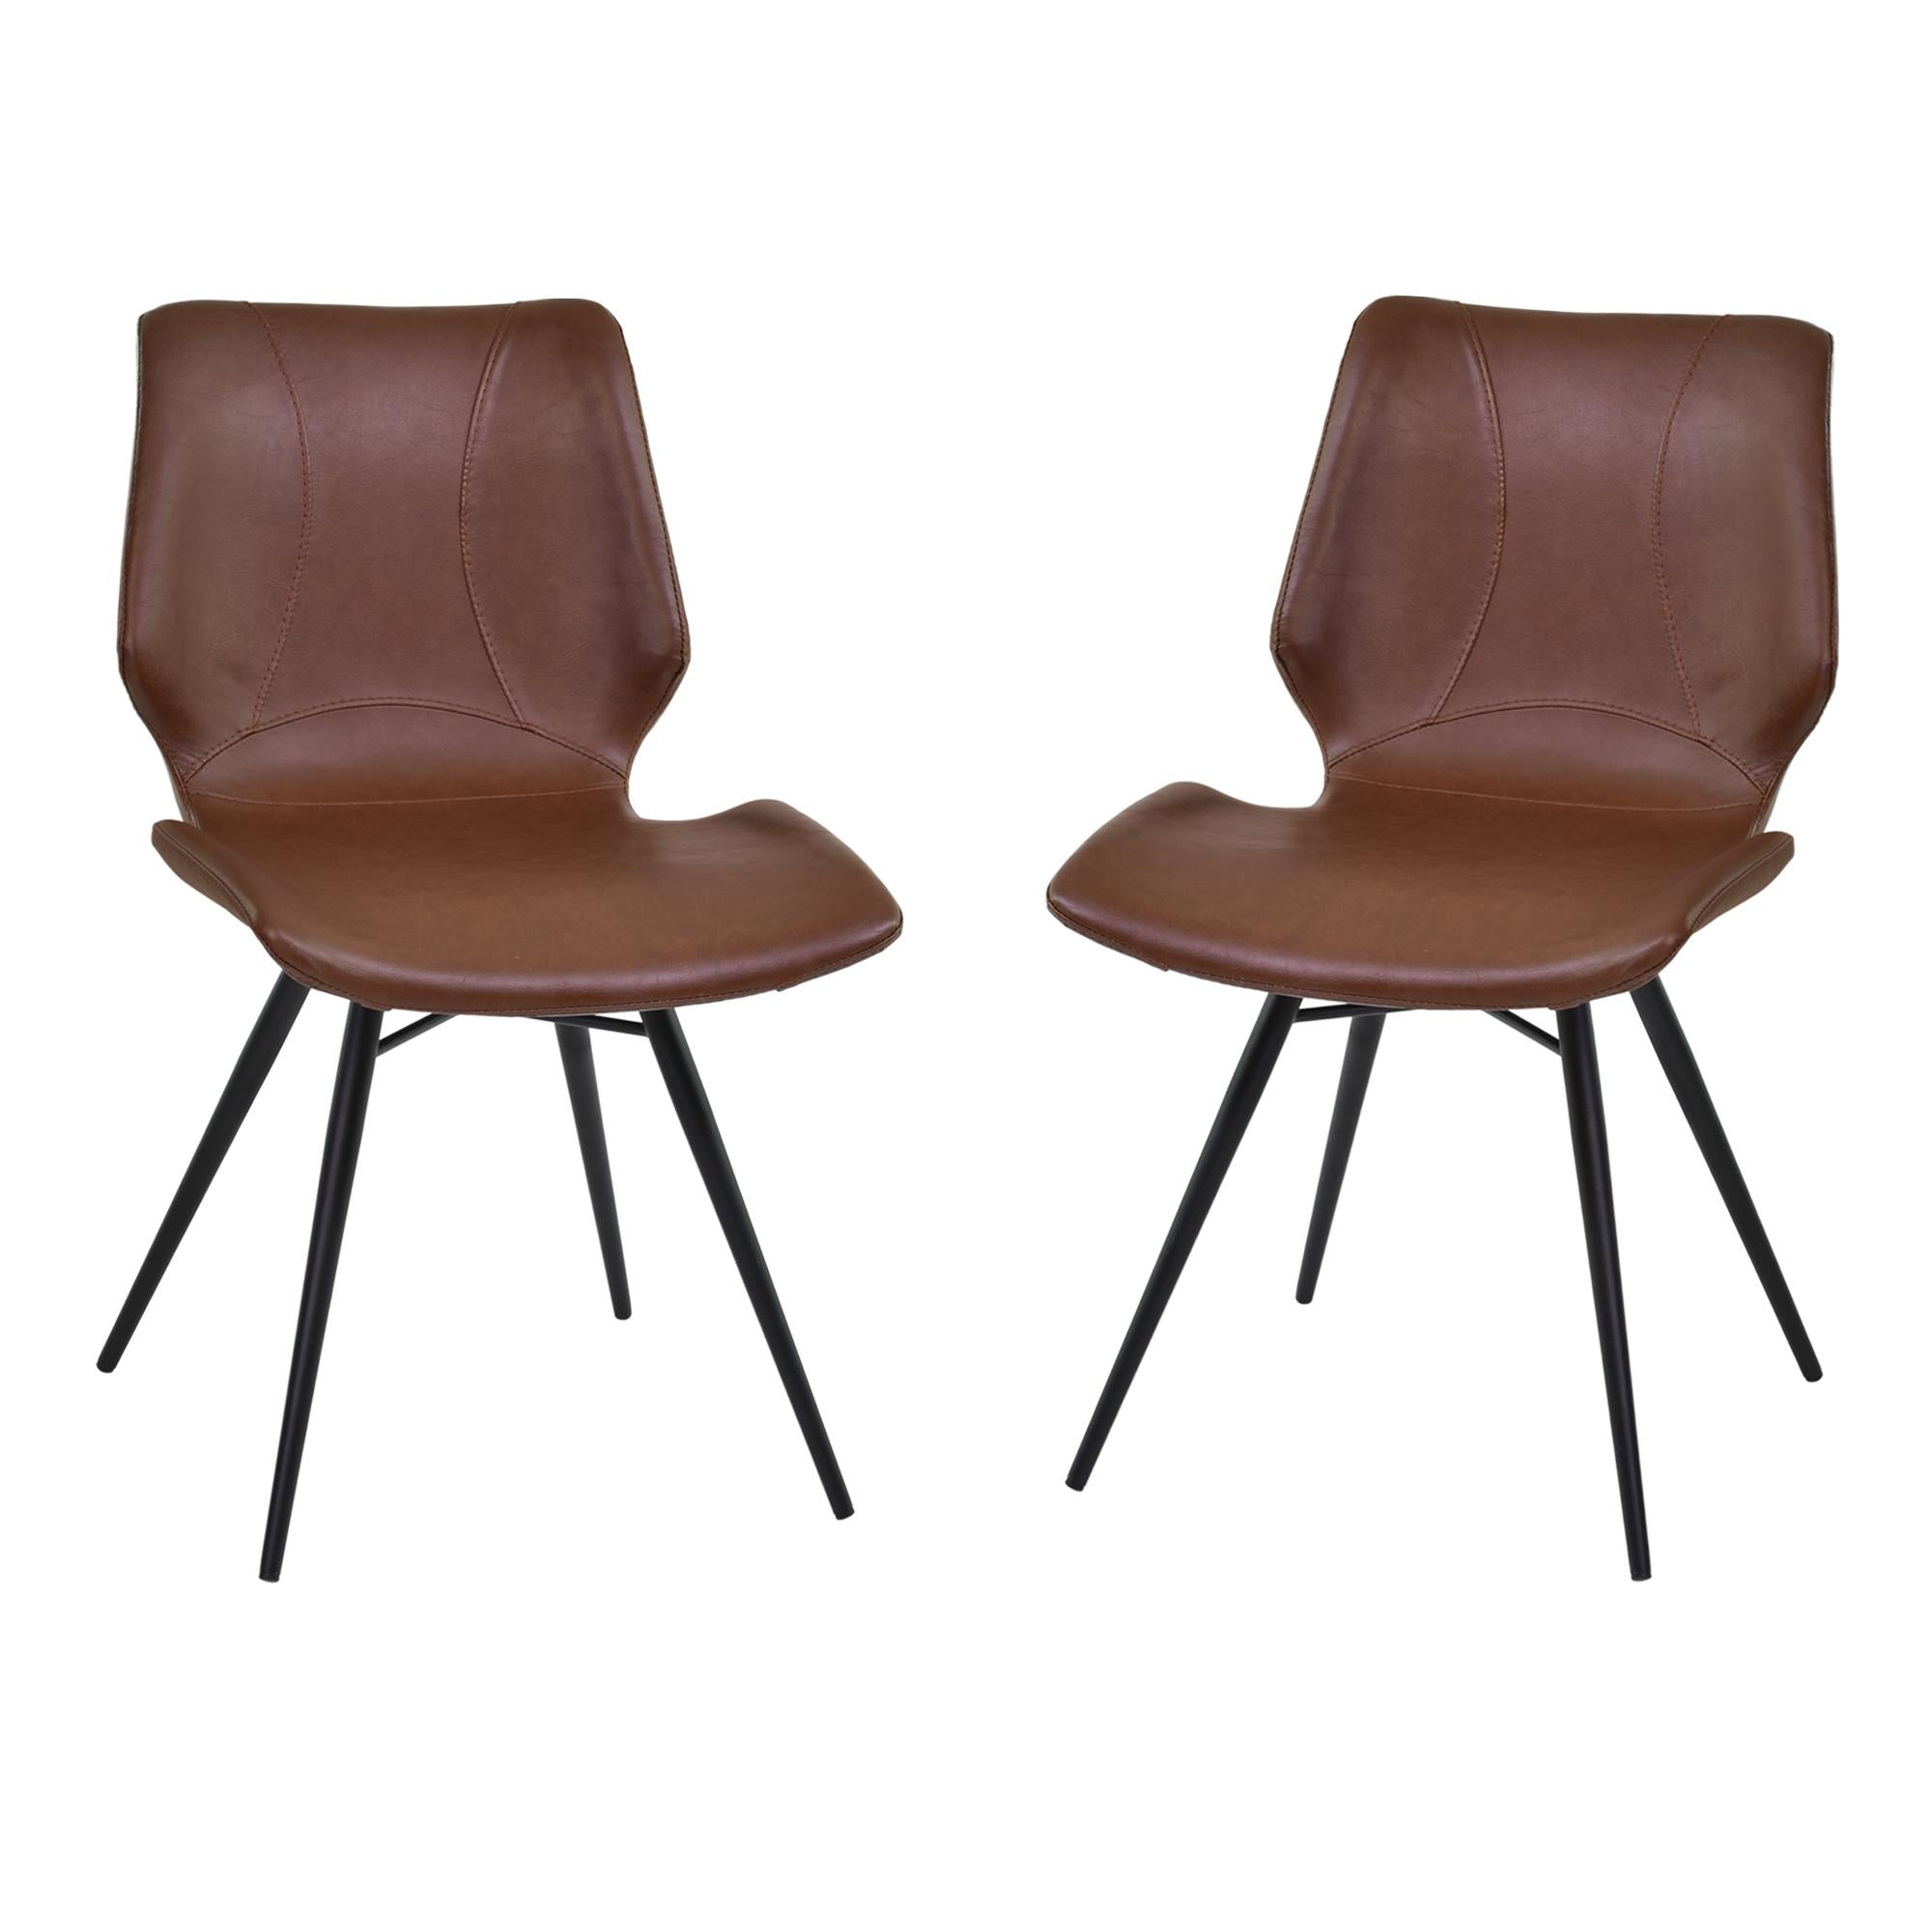 Armen Living Zurich Dining Chair in Vintage Coffee Pu and Black Metal Finish (Set of 2)